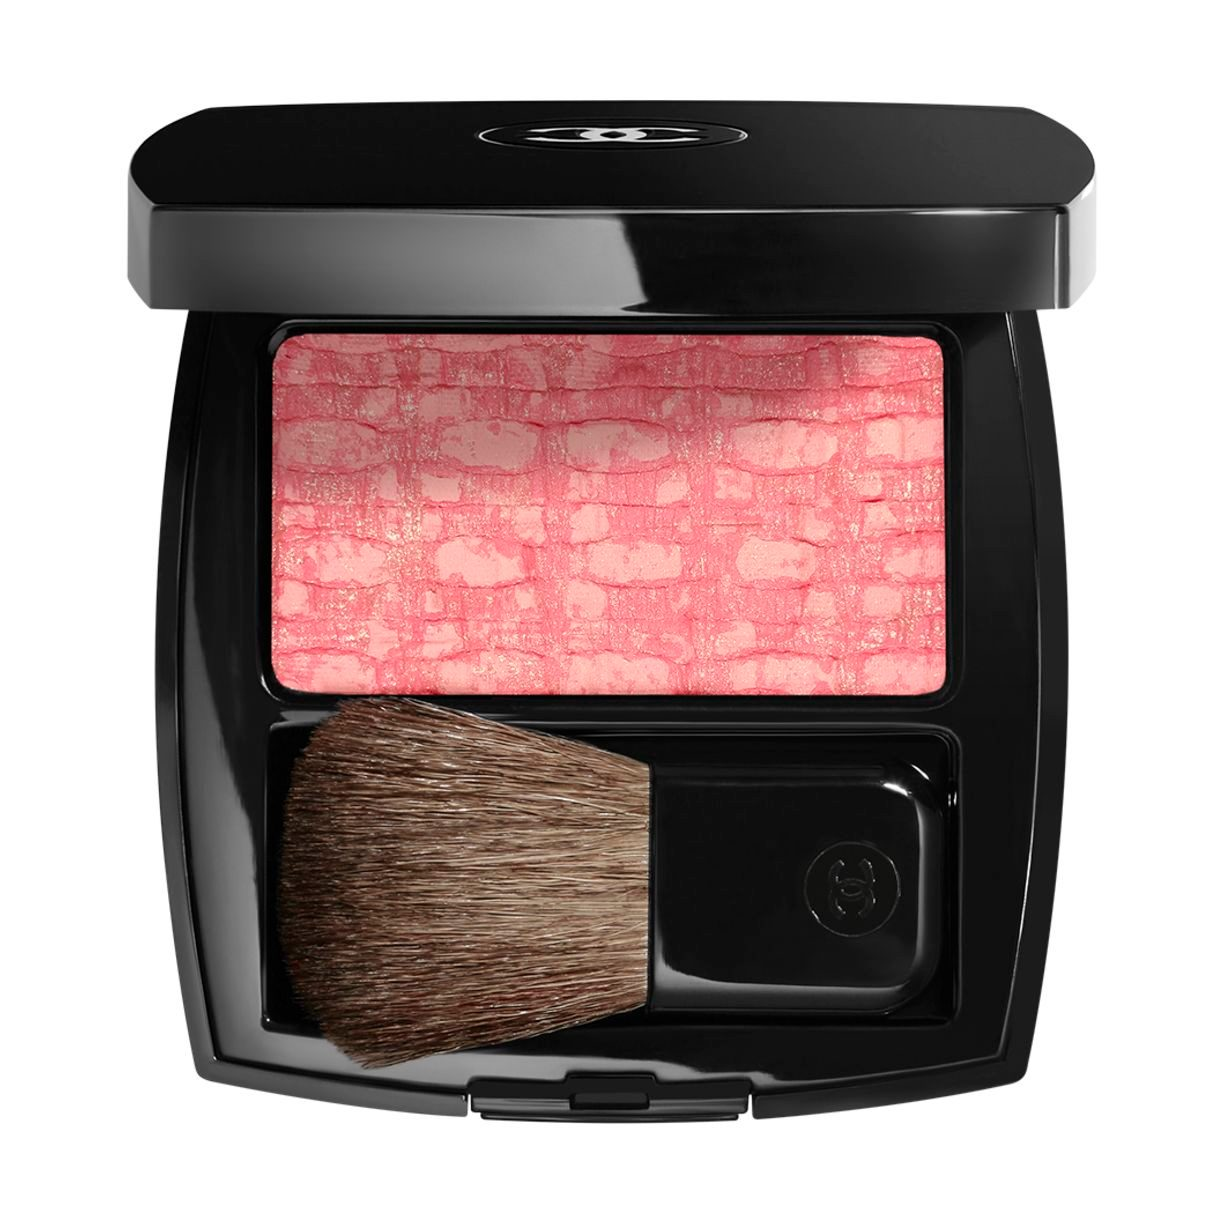 LES TISSAGES DE CHANEL BLUSH DUO IN POLVERE SETOSA 130 - TWEED EVANESCENT